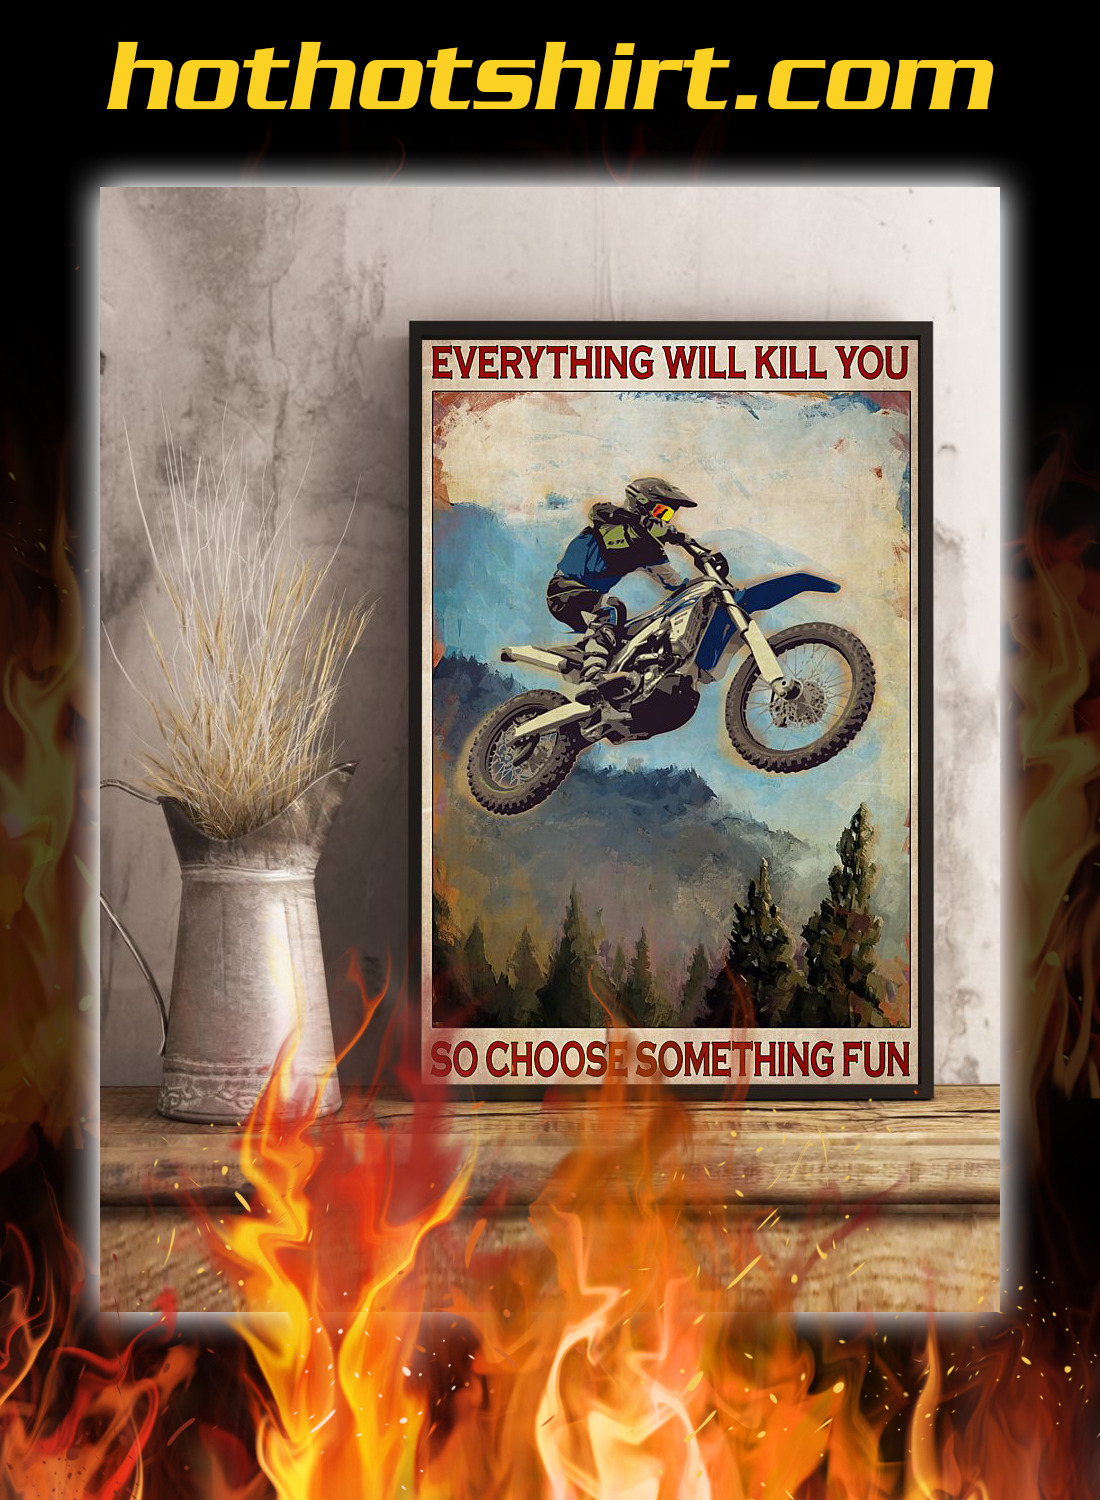 Enduro everything will kill you so choose something fun poster 3